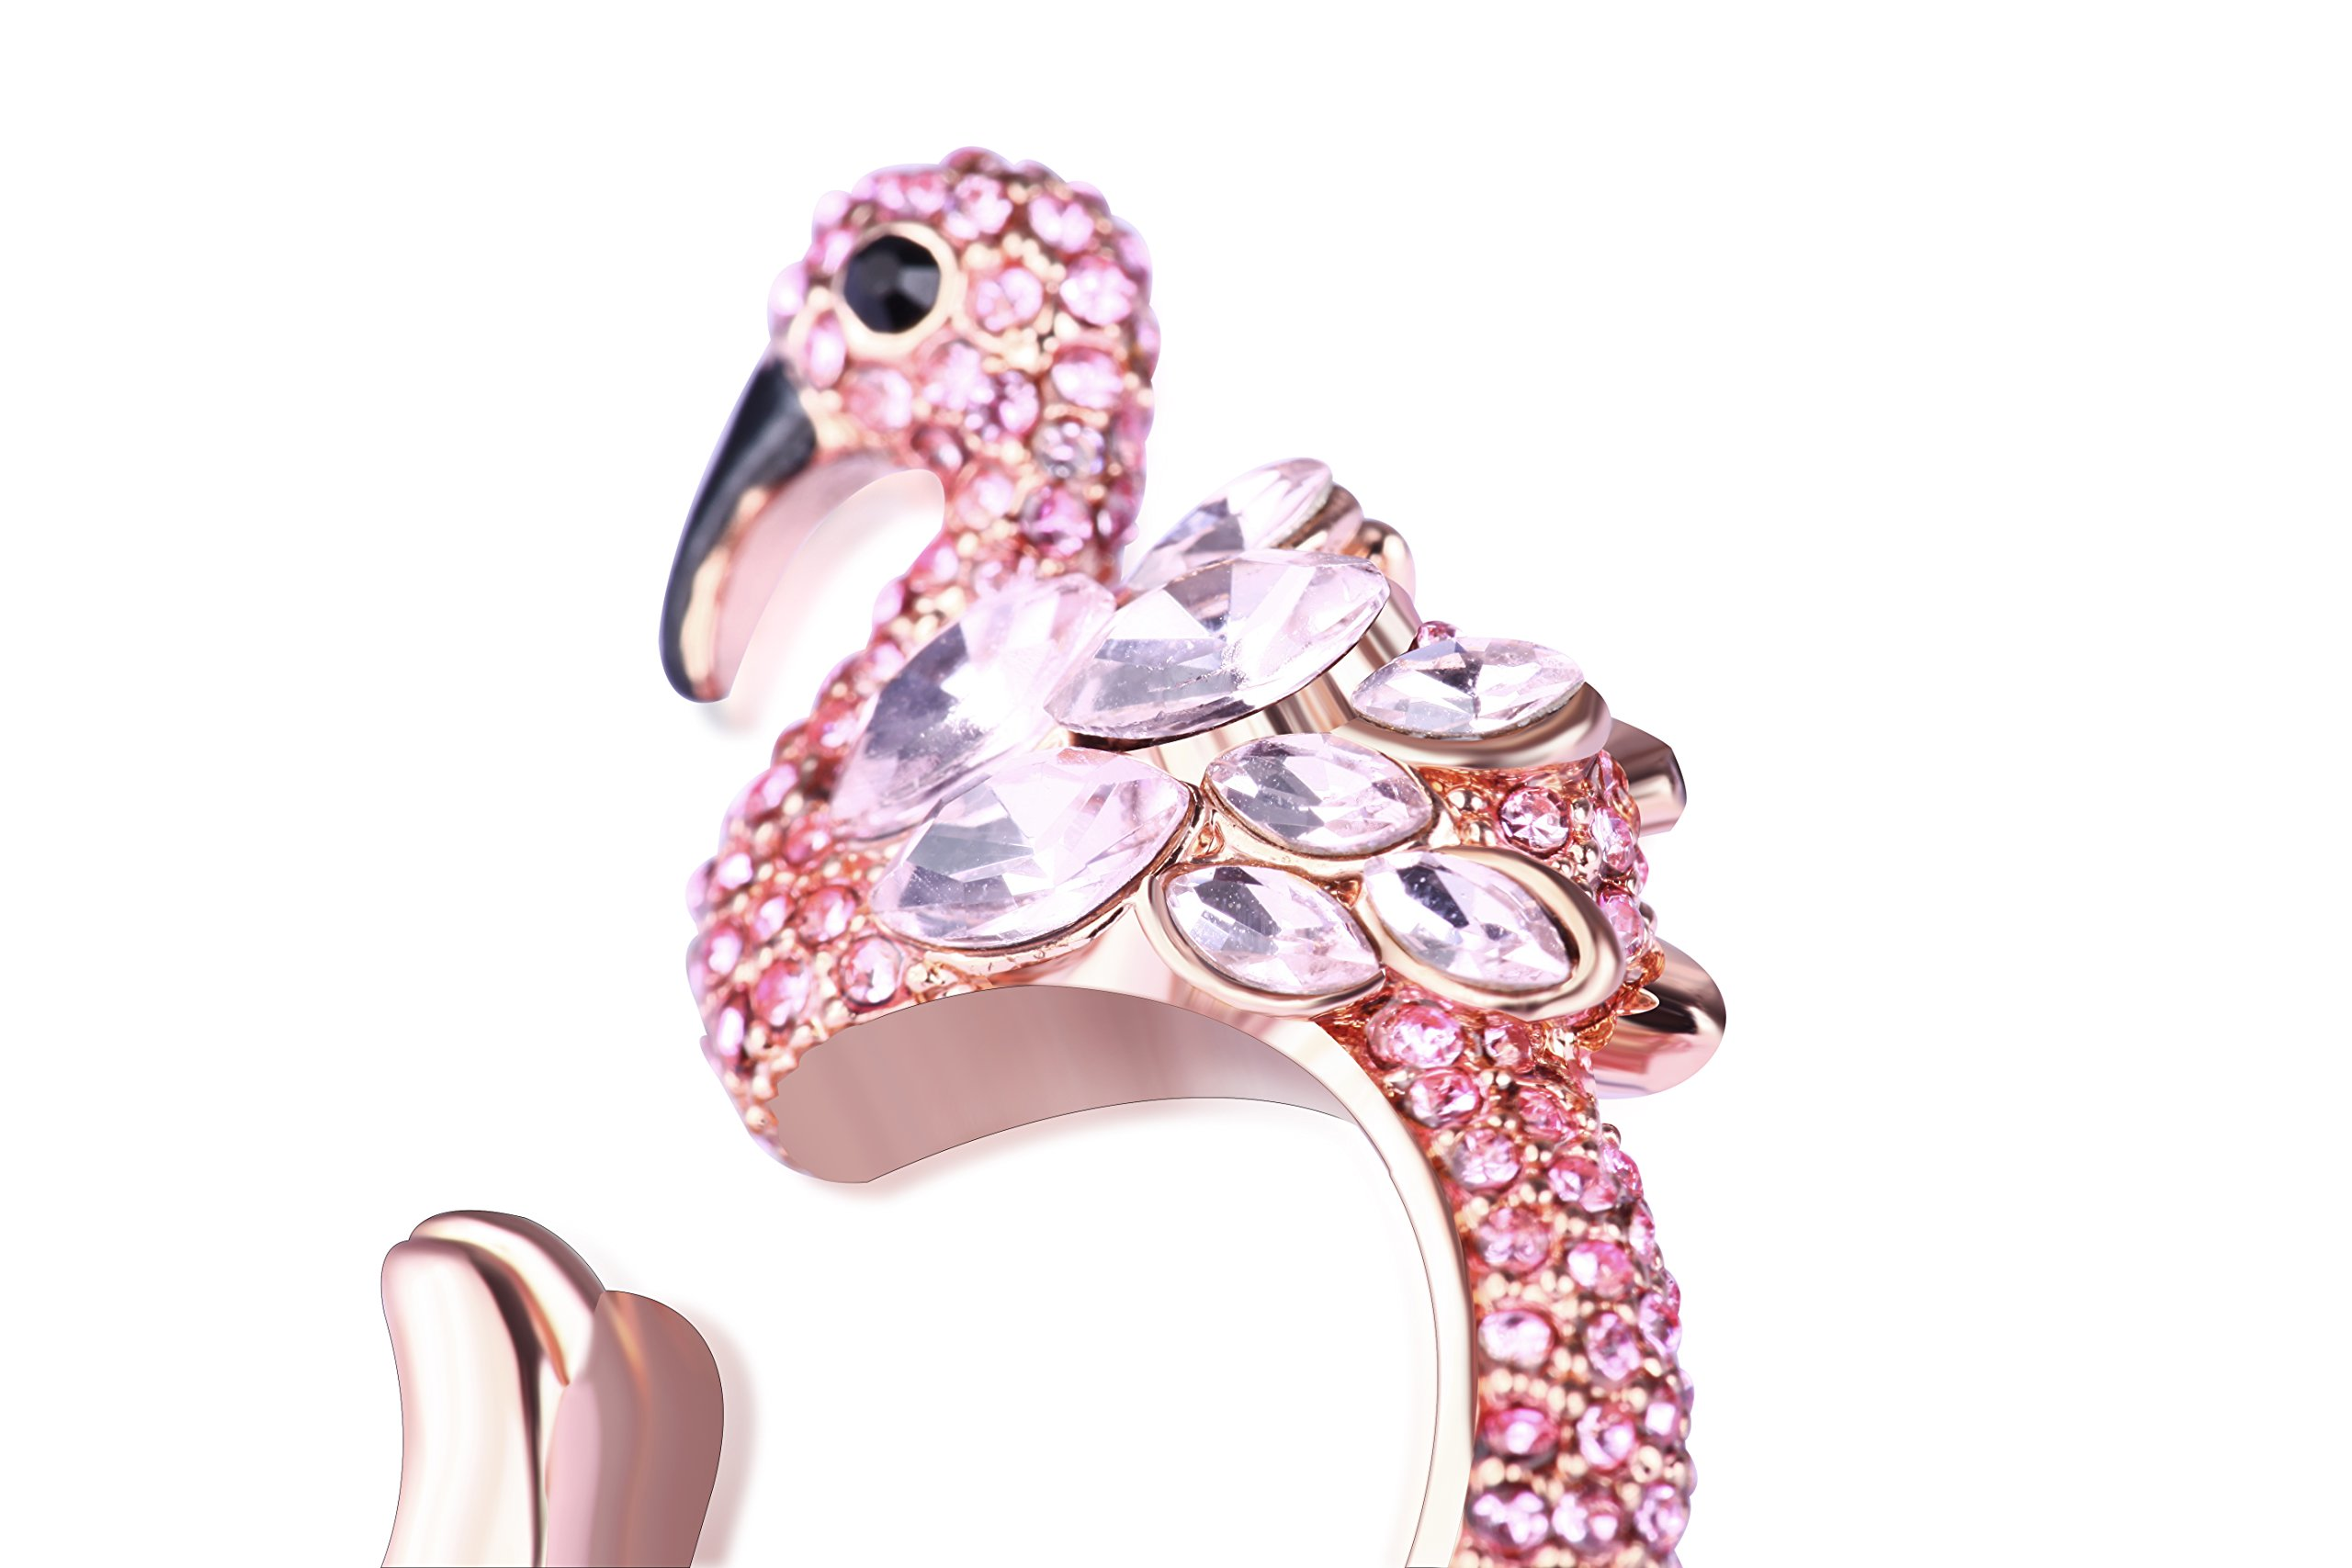 Animal Ring Cute Flamingo for Young Womens Gifts Mom Birthday Teens Girls Party Cuff Statement Ring (Pink) by Paitse (Image #4)